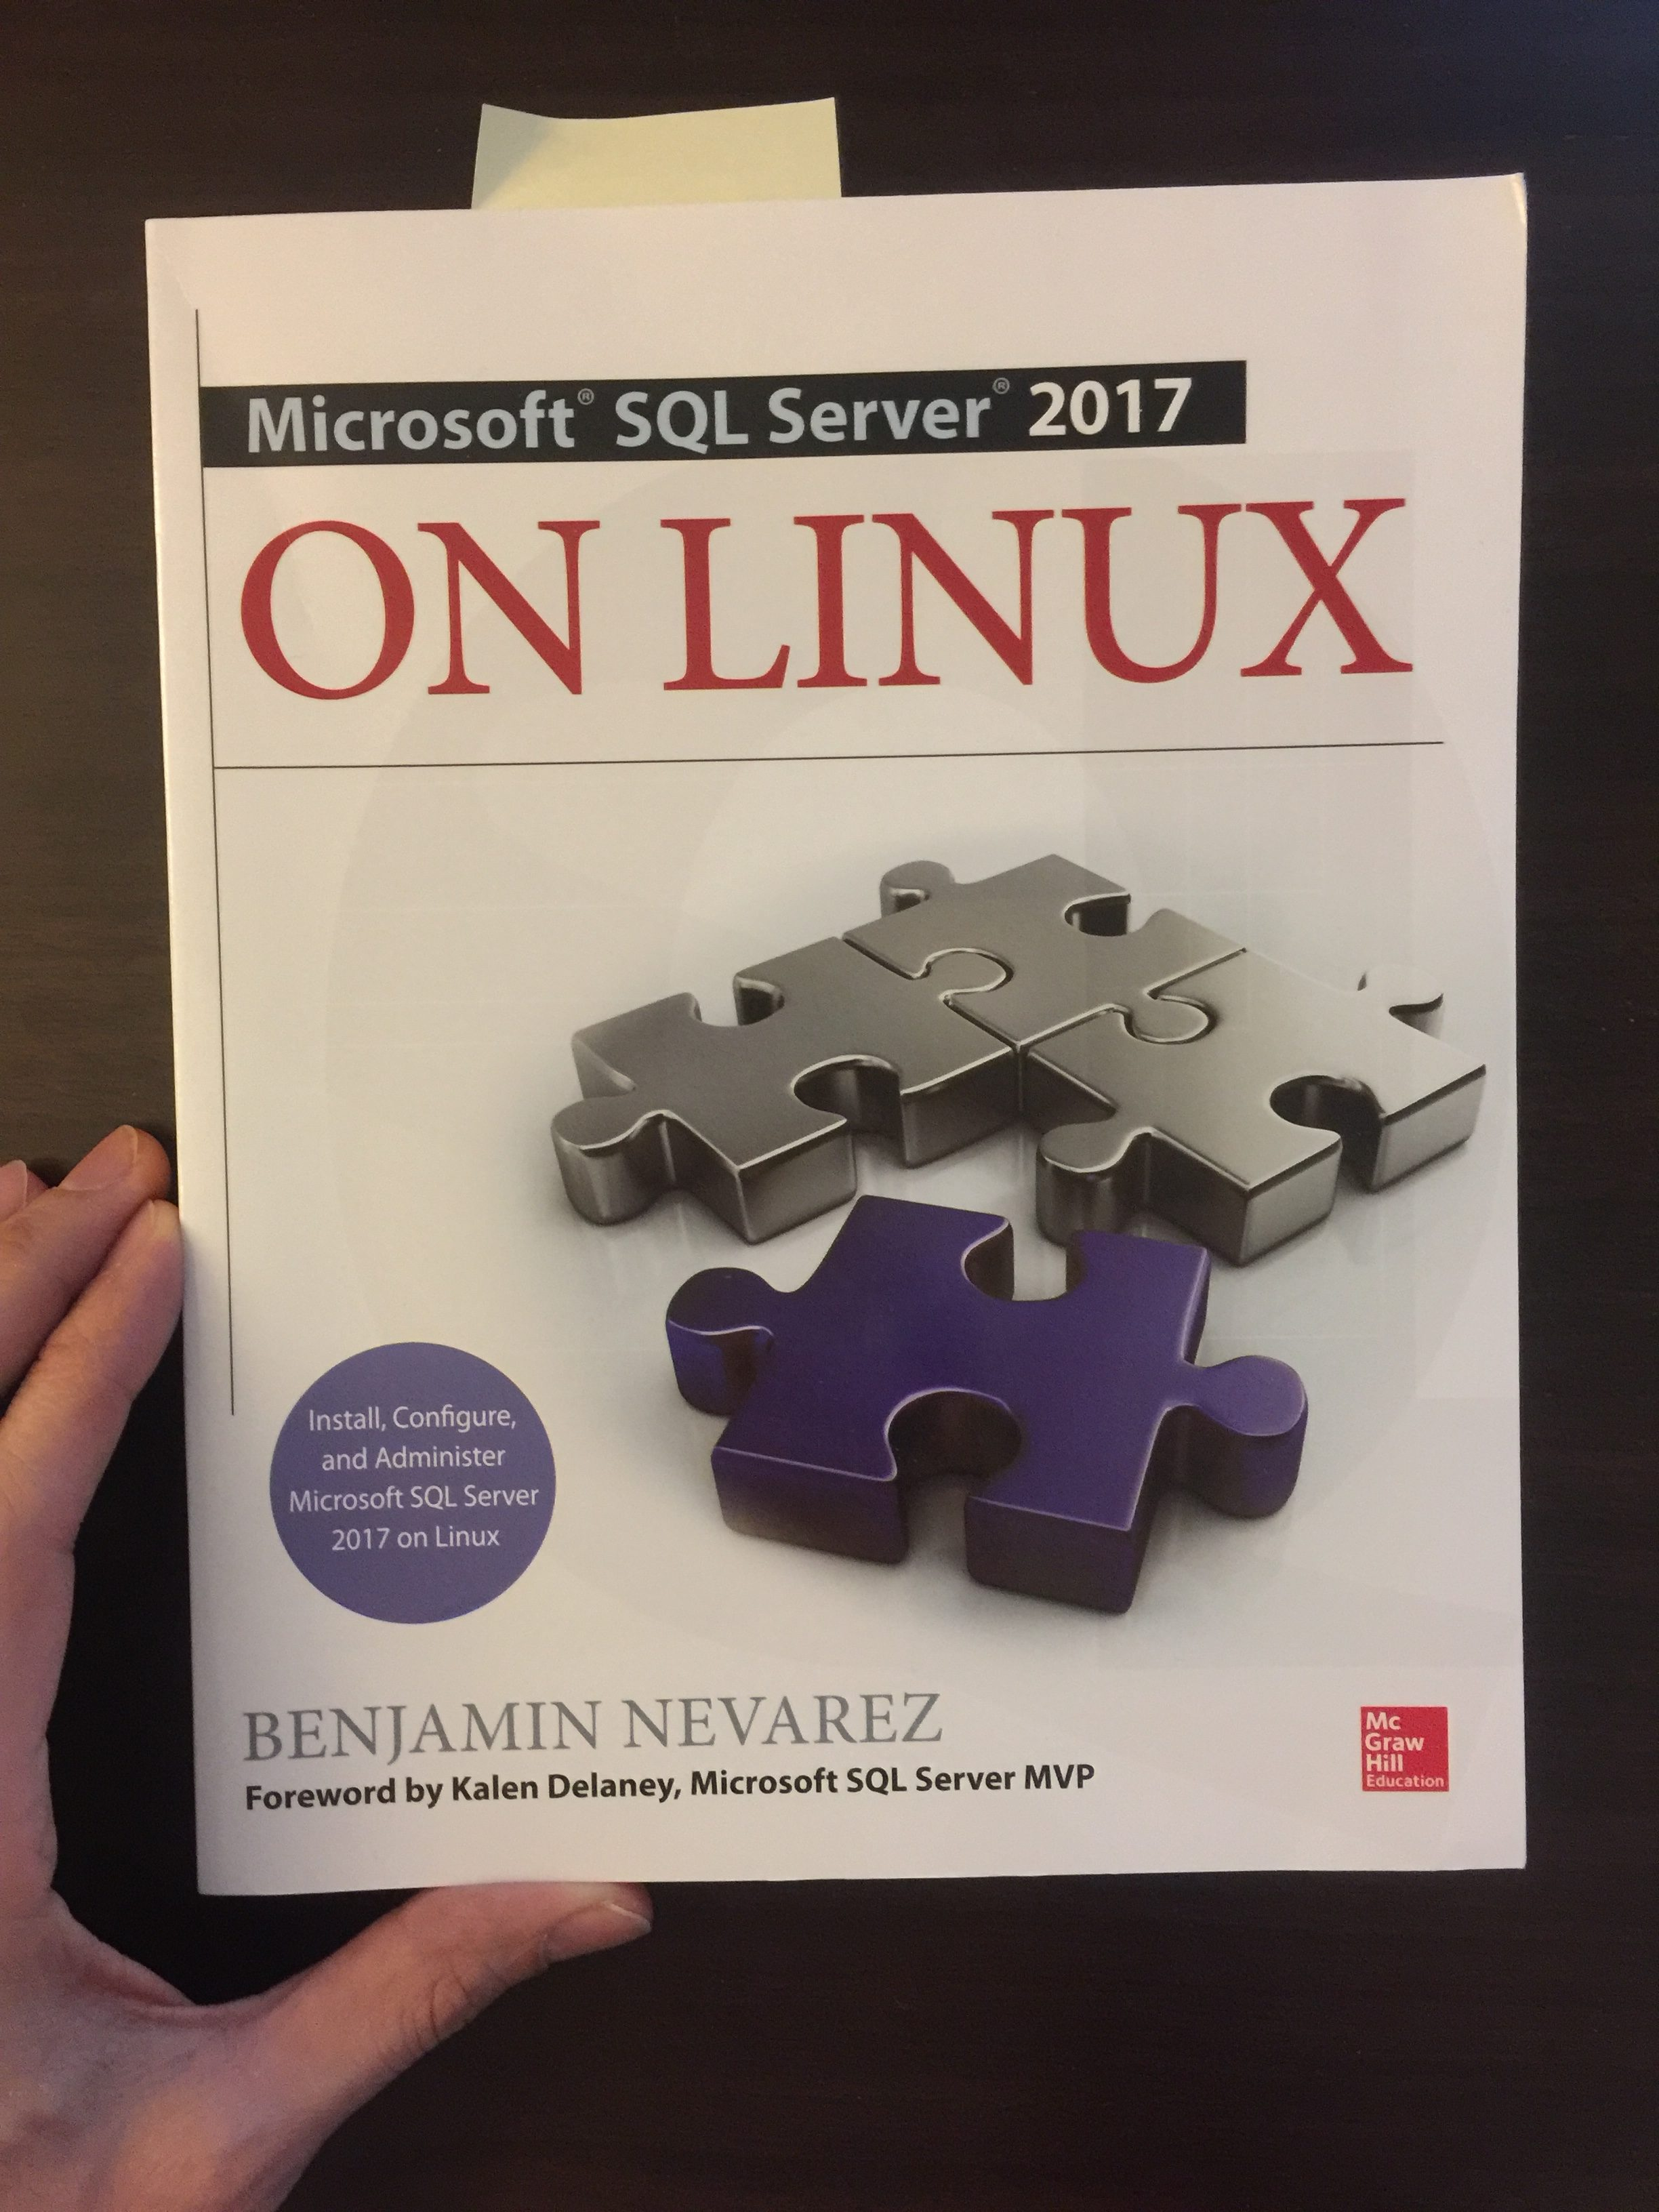 Microsoft SQL Server 2017 on Linux by Benjamin Nevarez